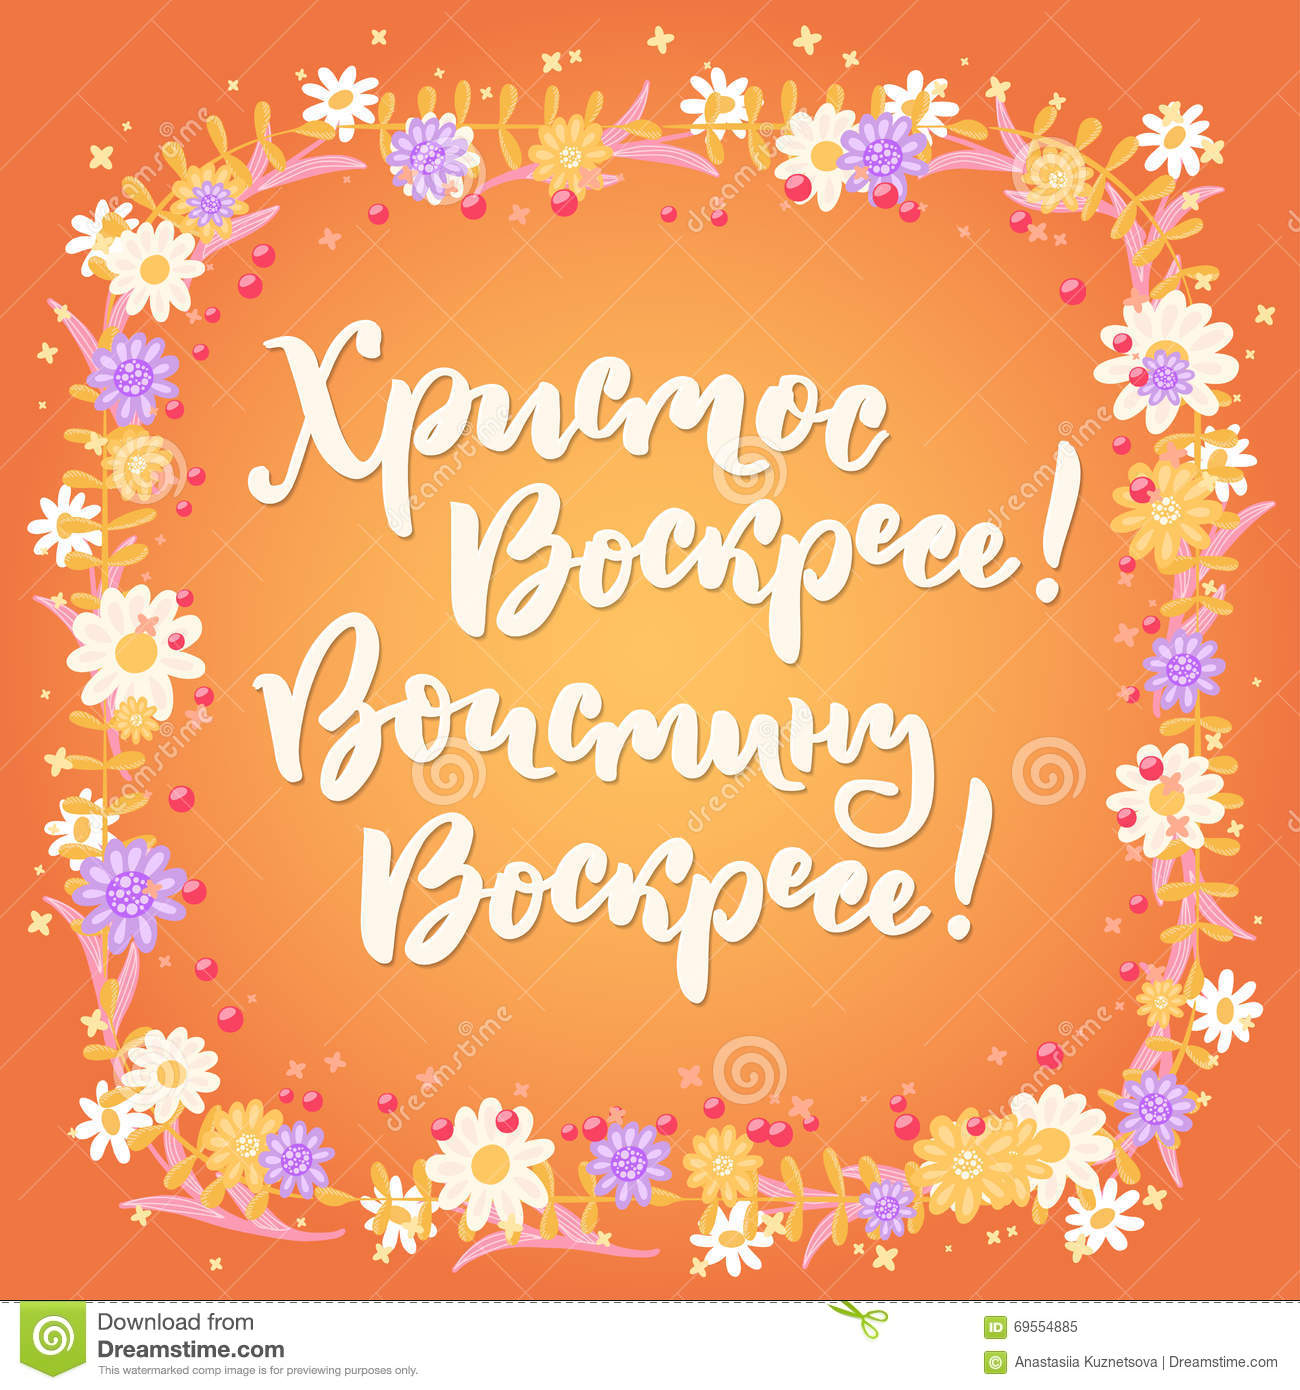 Russian easter greeting merry christmas and happy new year 2018 russian easter greeting m4hsunfo